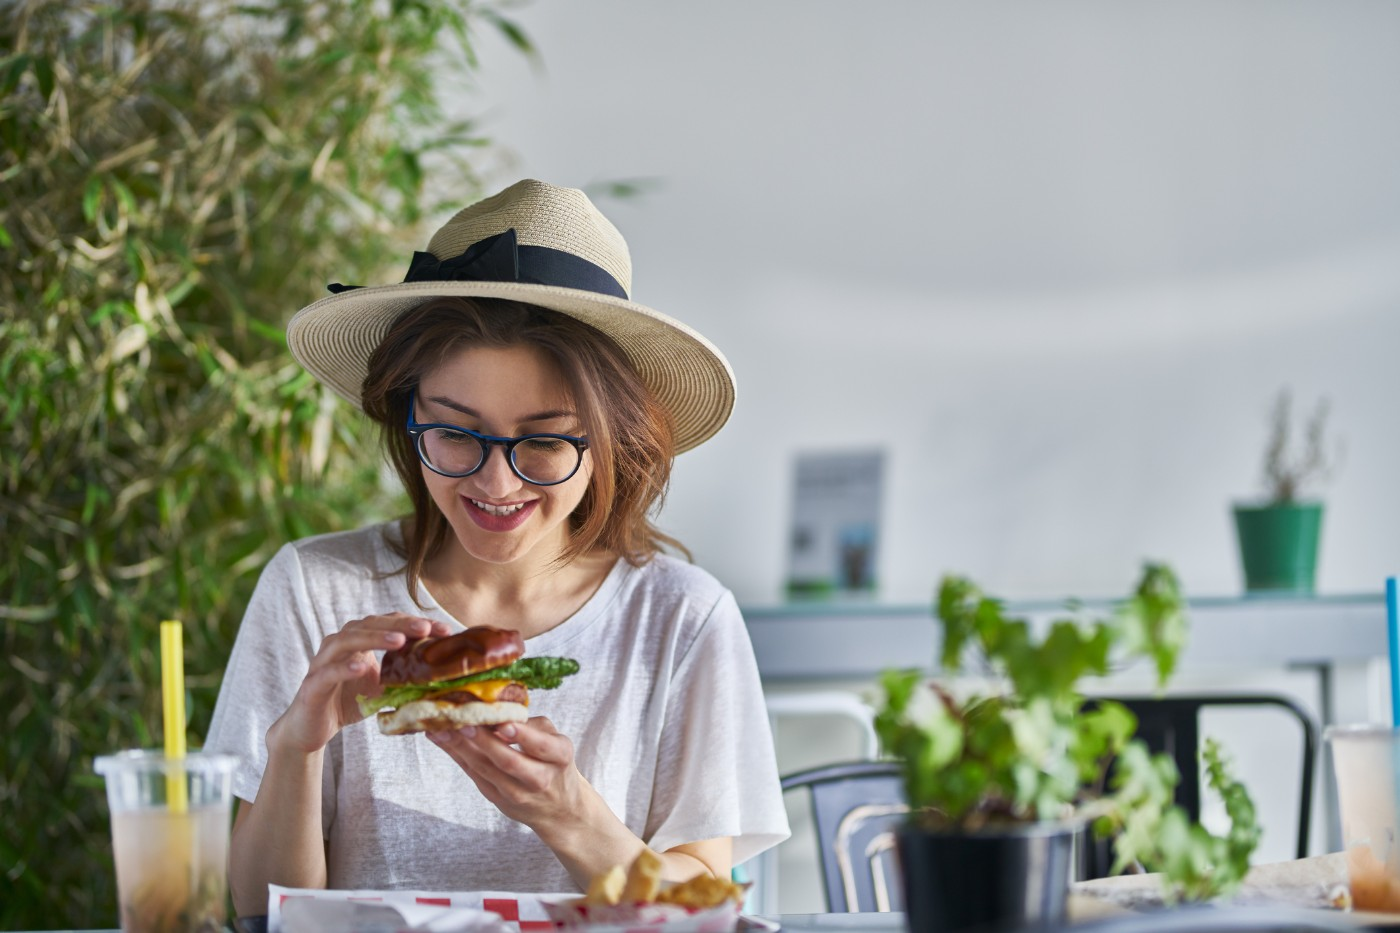 https://tickertapecdn.tdameritrade.com/assets/images/pages/md/Eating a veggie burger- Beyond Meat Earnings